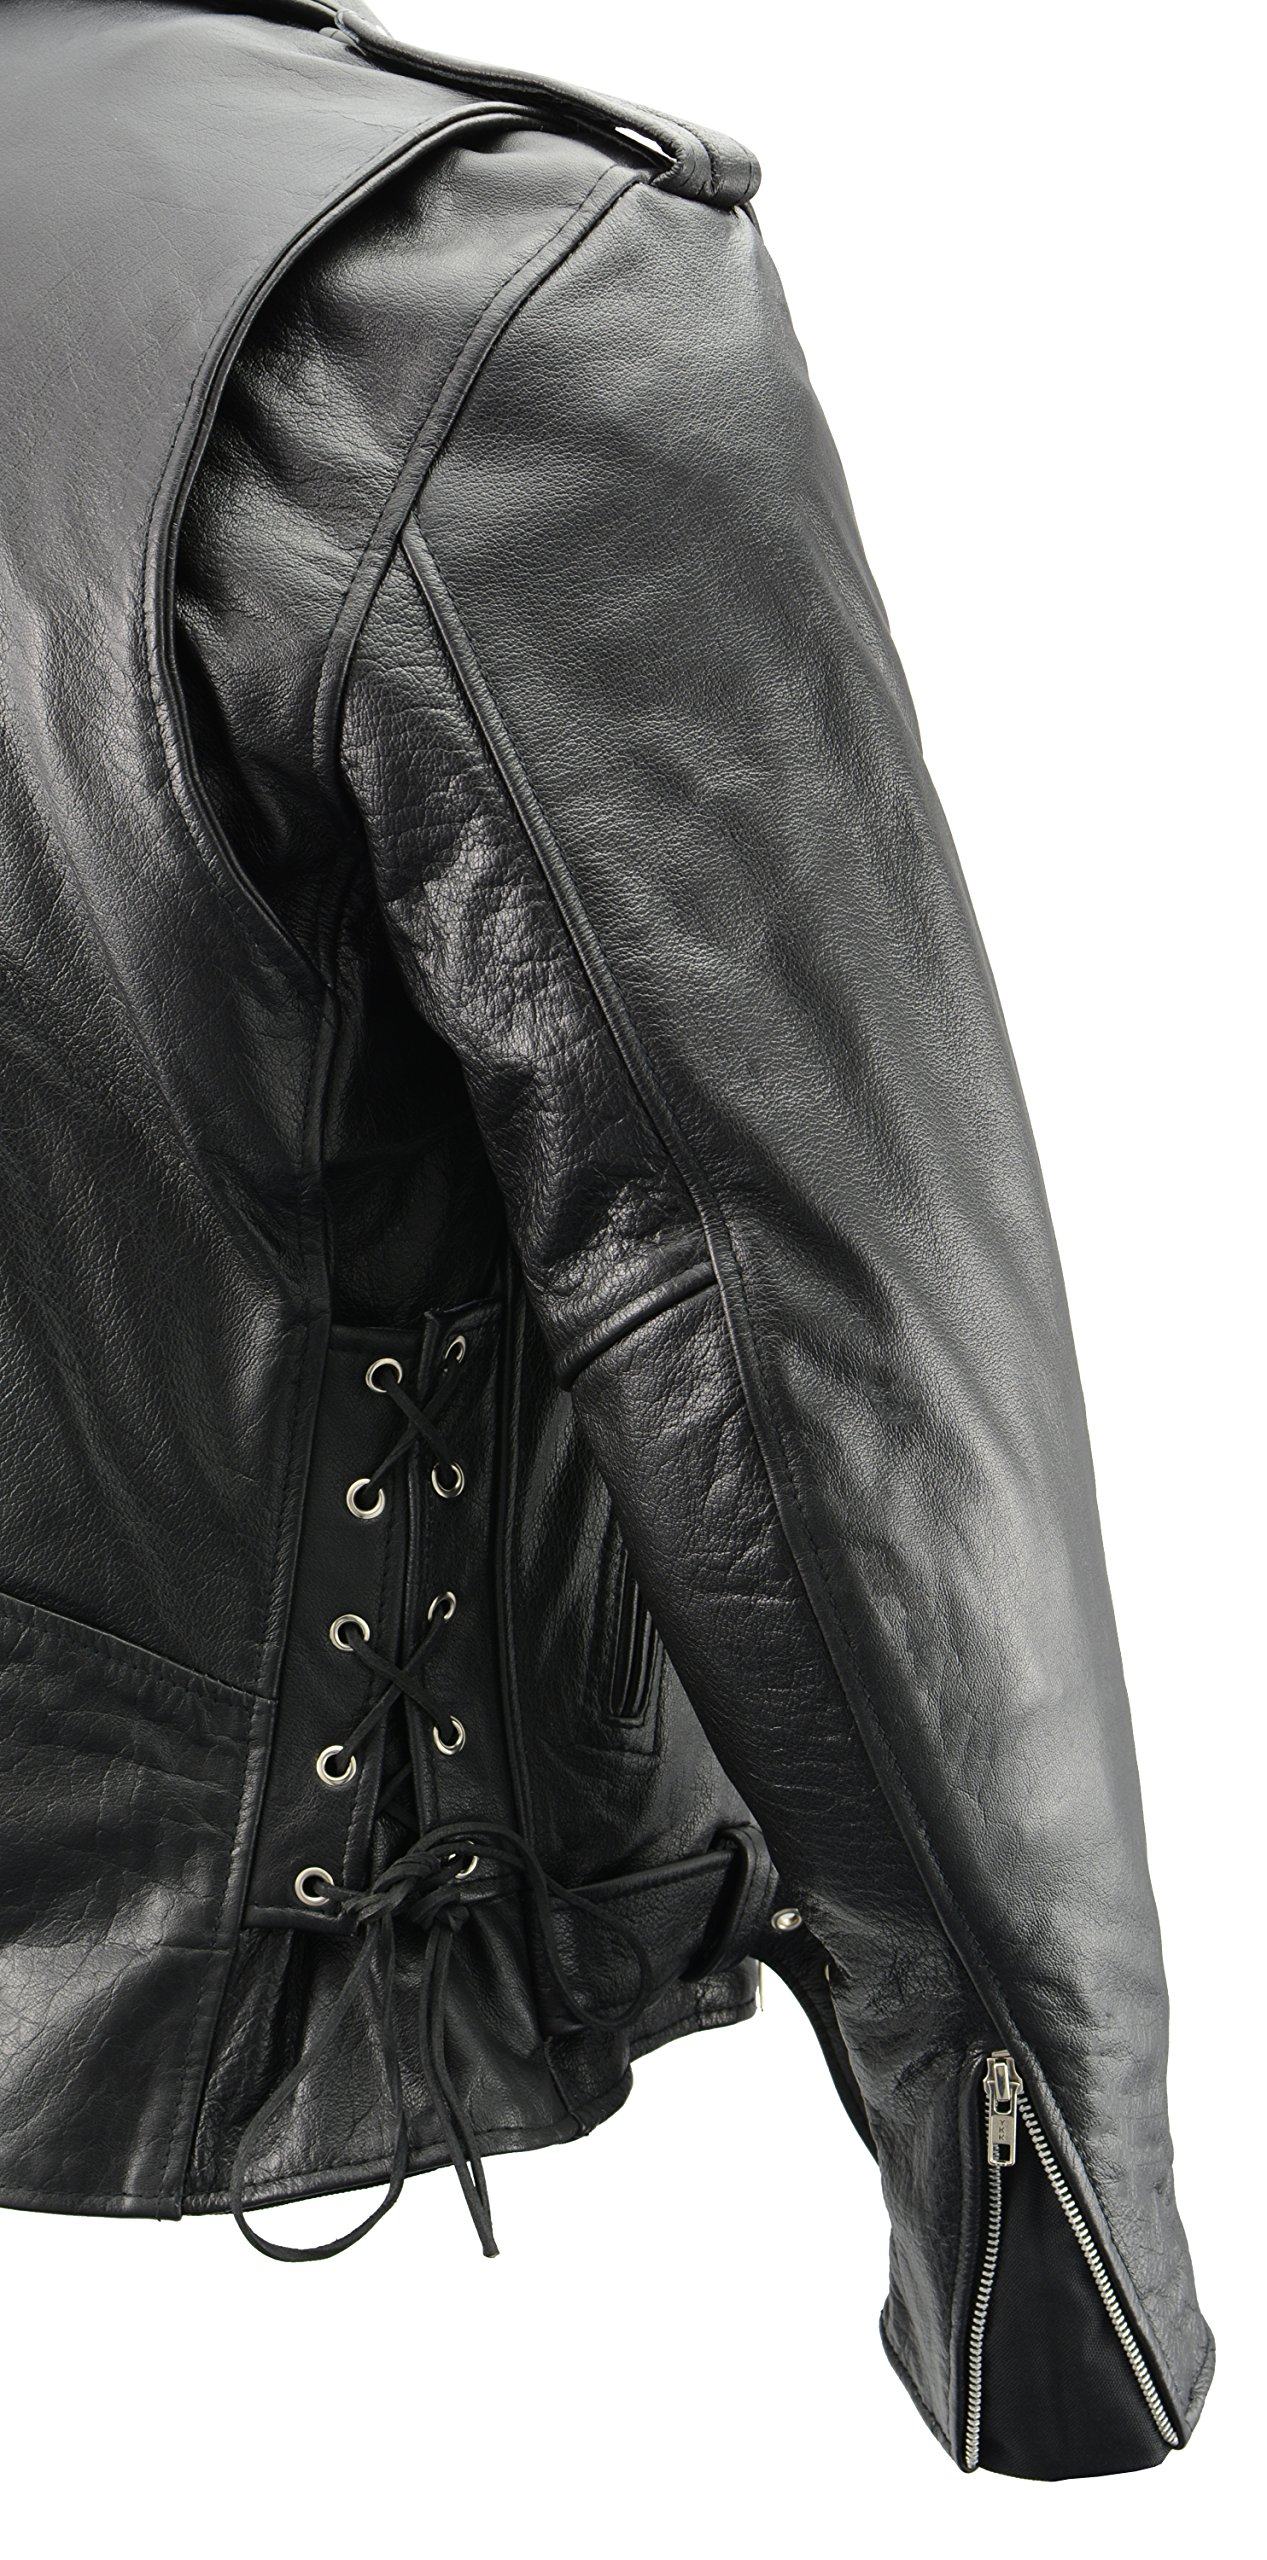 Men's Leather Motorcycle Jacket with CE Certified Armor | Premium Natural Buffalo Leather | 2 Concealed Carry Gun Pockets | Adjustable Side Lace Biker Jacket with Patch Access Lining (Black, 8XL) by The Bikers Zone (Image #5)